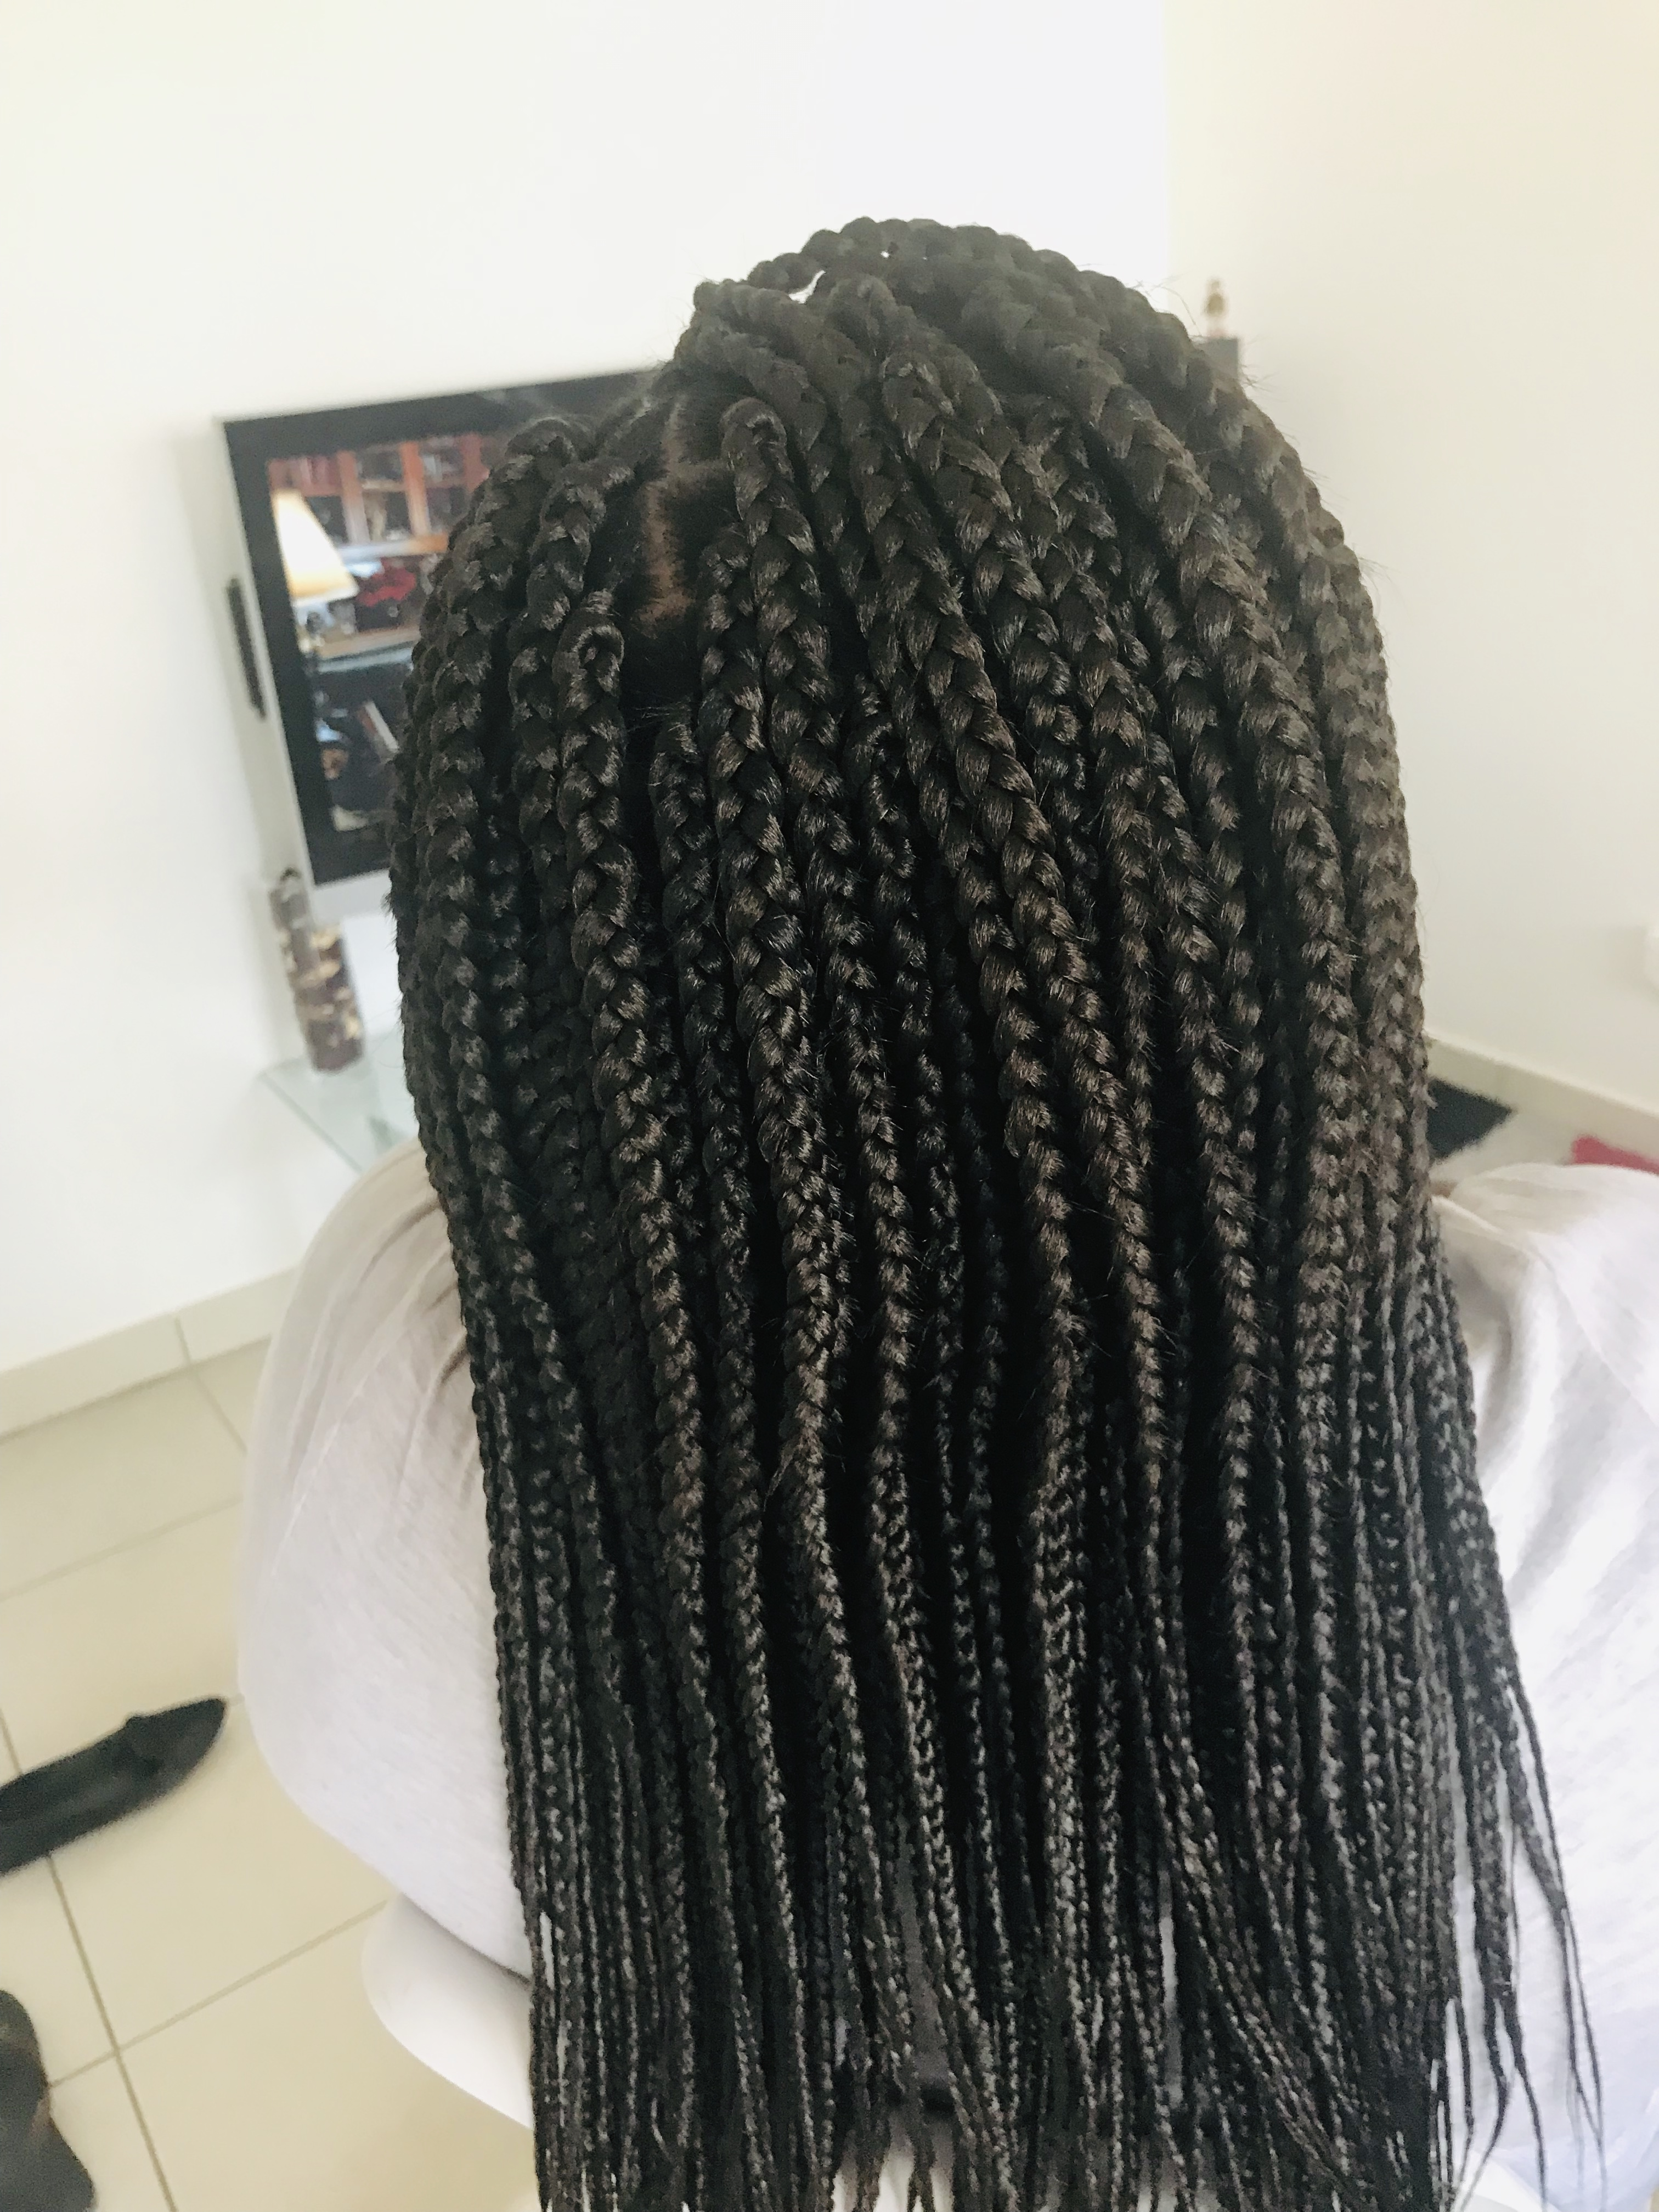 salon de coiffure afro tresse tresses box braids crochet braids vanilles tissages paris 75 77 78 91 92 93 94 95 UYJYMVNA